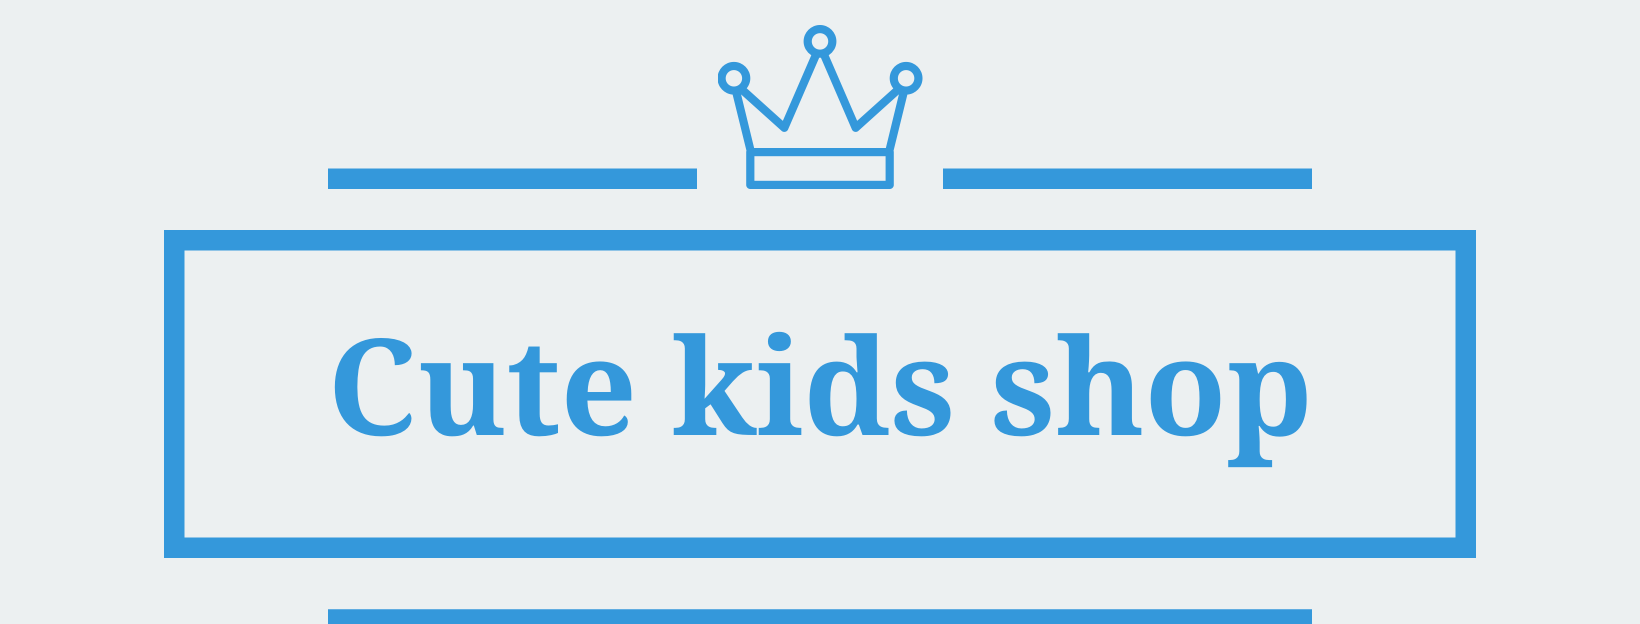 CuteKidsShop.com